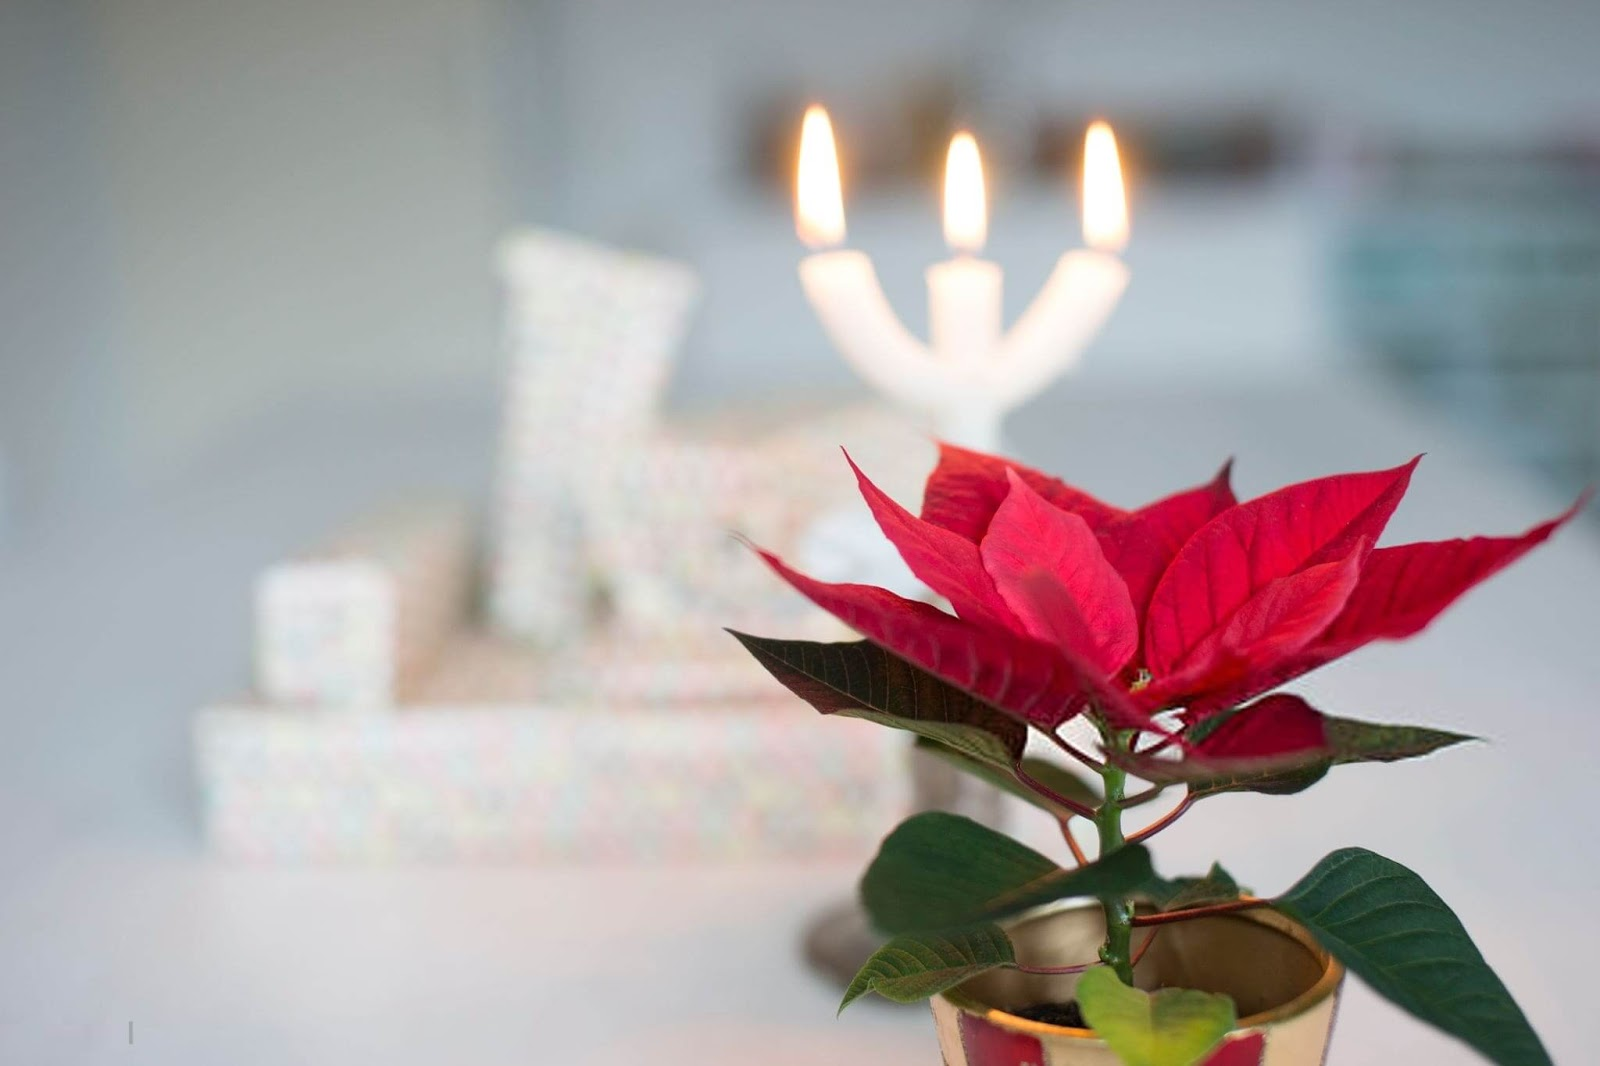 Pictures of Christmas Flowers